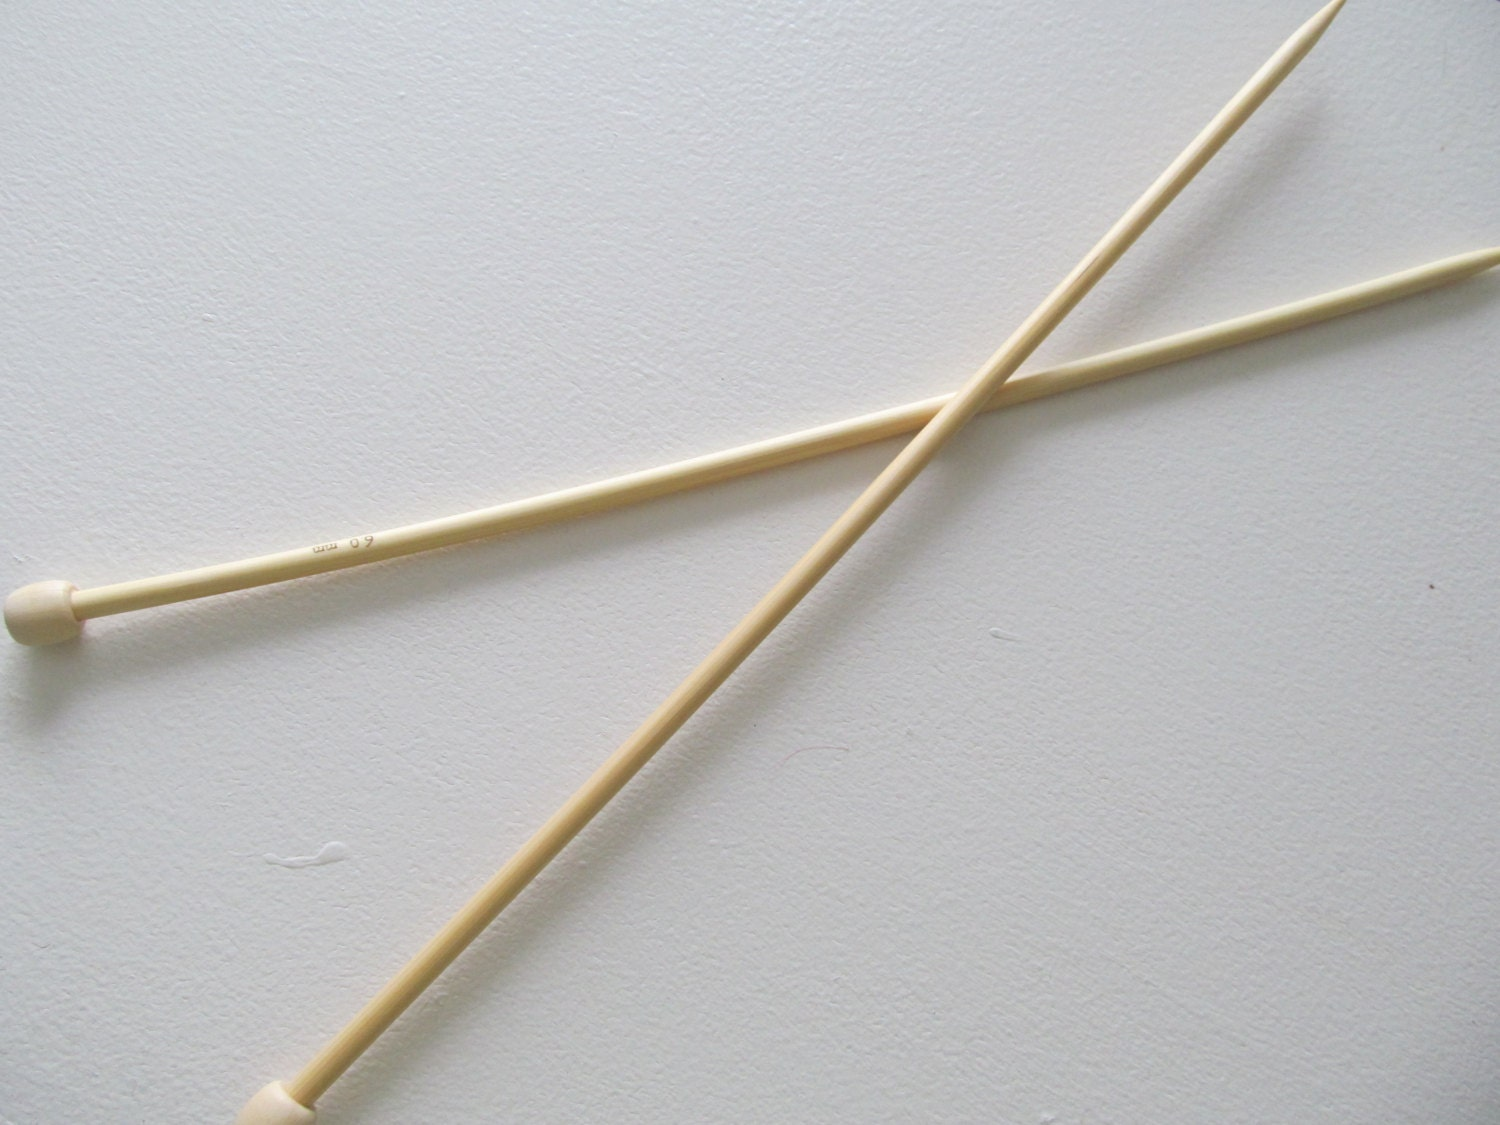 Knitting Needles Mm : Size knitting needles mm bamboo wood inch long by